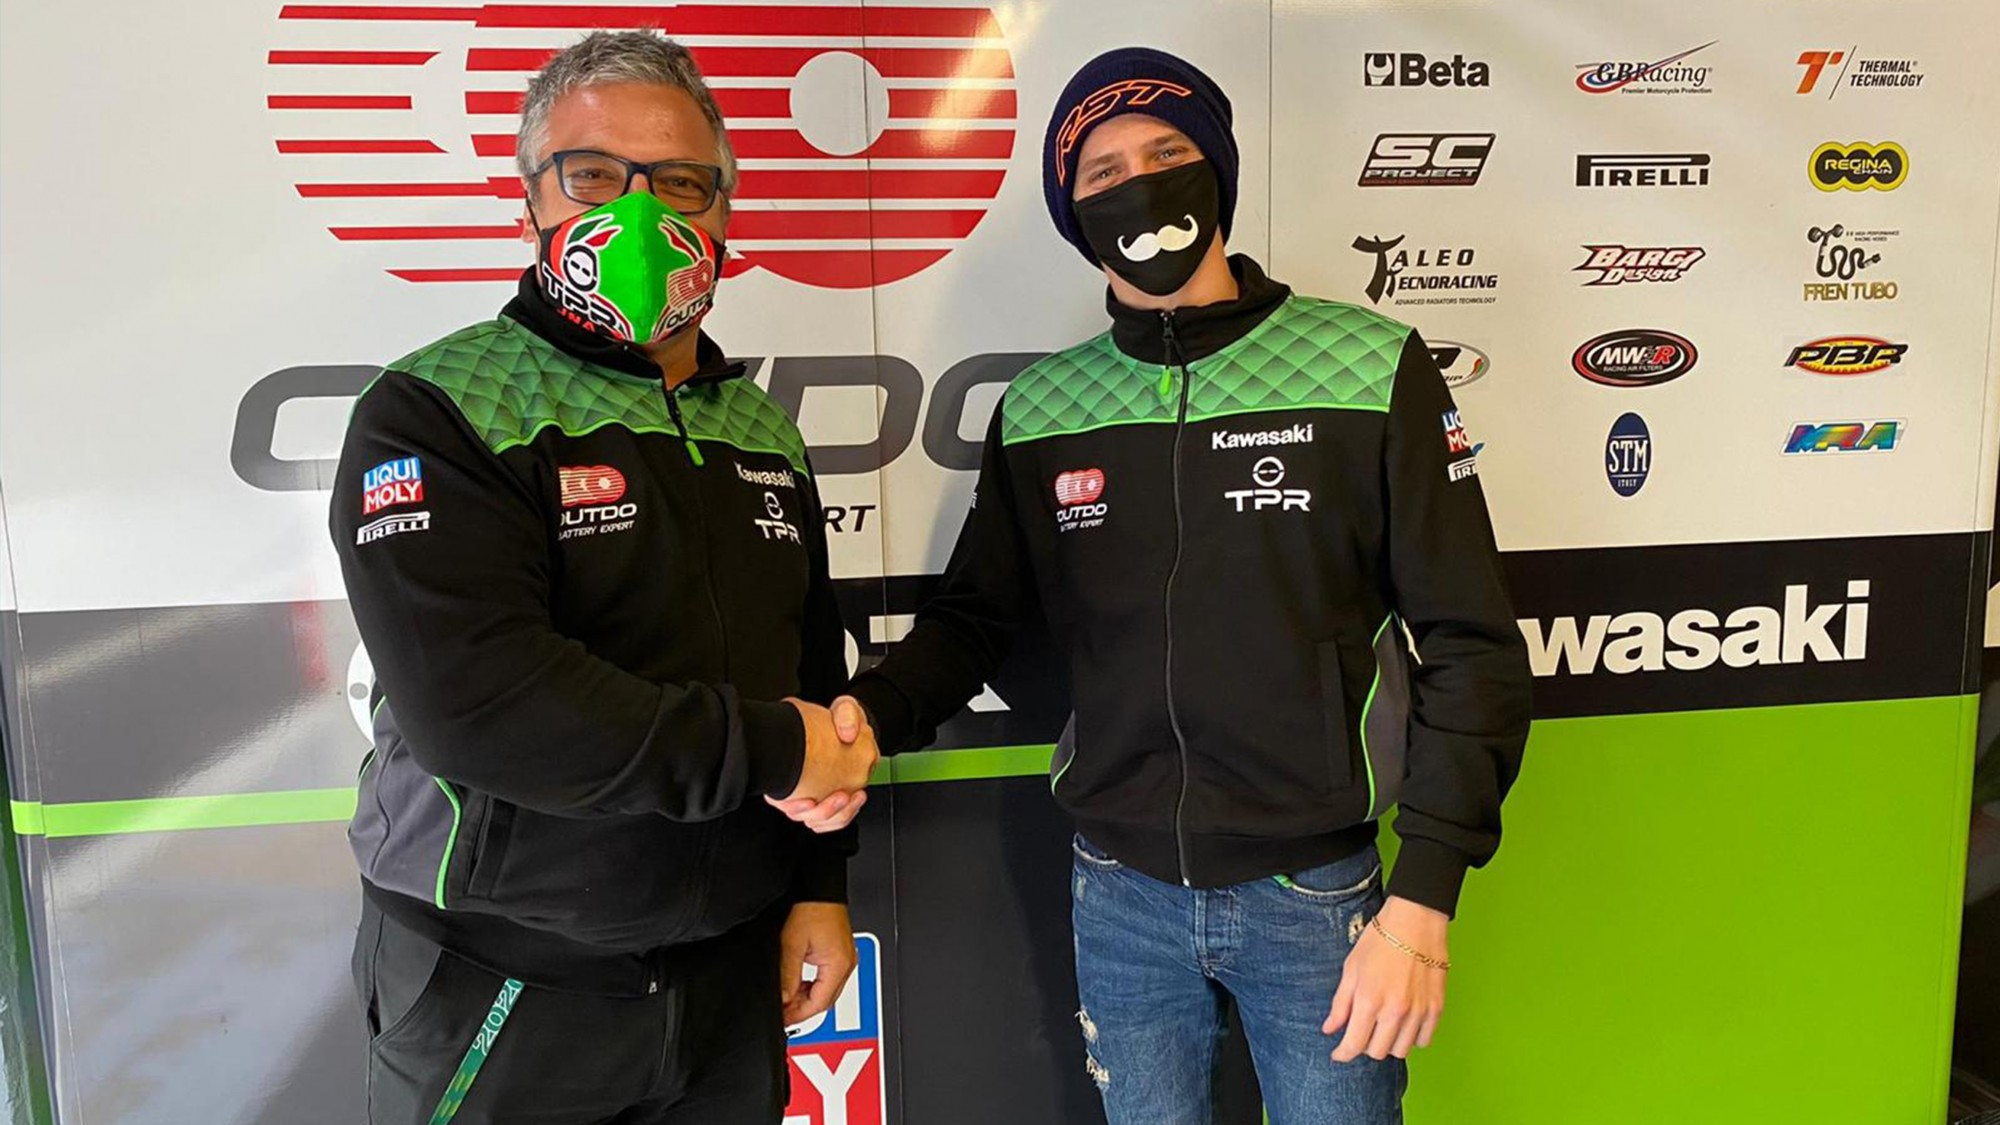 Turno para Loris Cresson en el Pedercini Racing